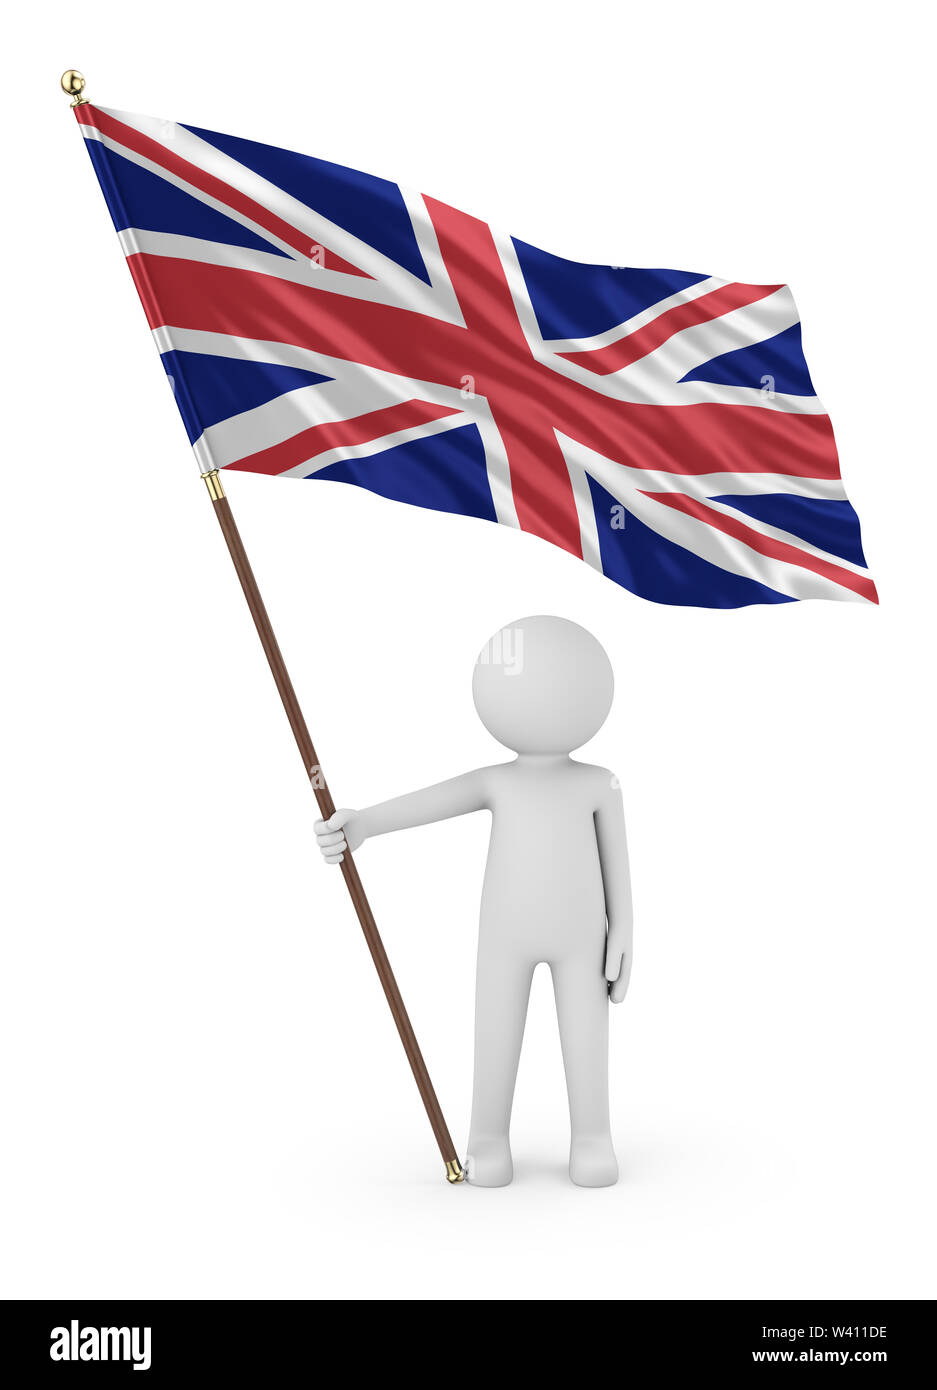 British Patriot Stickman Holding National Flag of the United Kingdom of Great Britain and Northern Ireland 3D Illustration On White Background Stock Photo